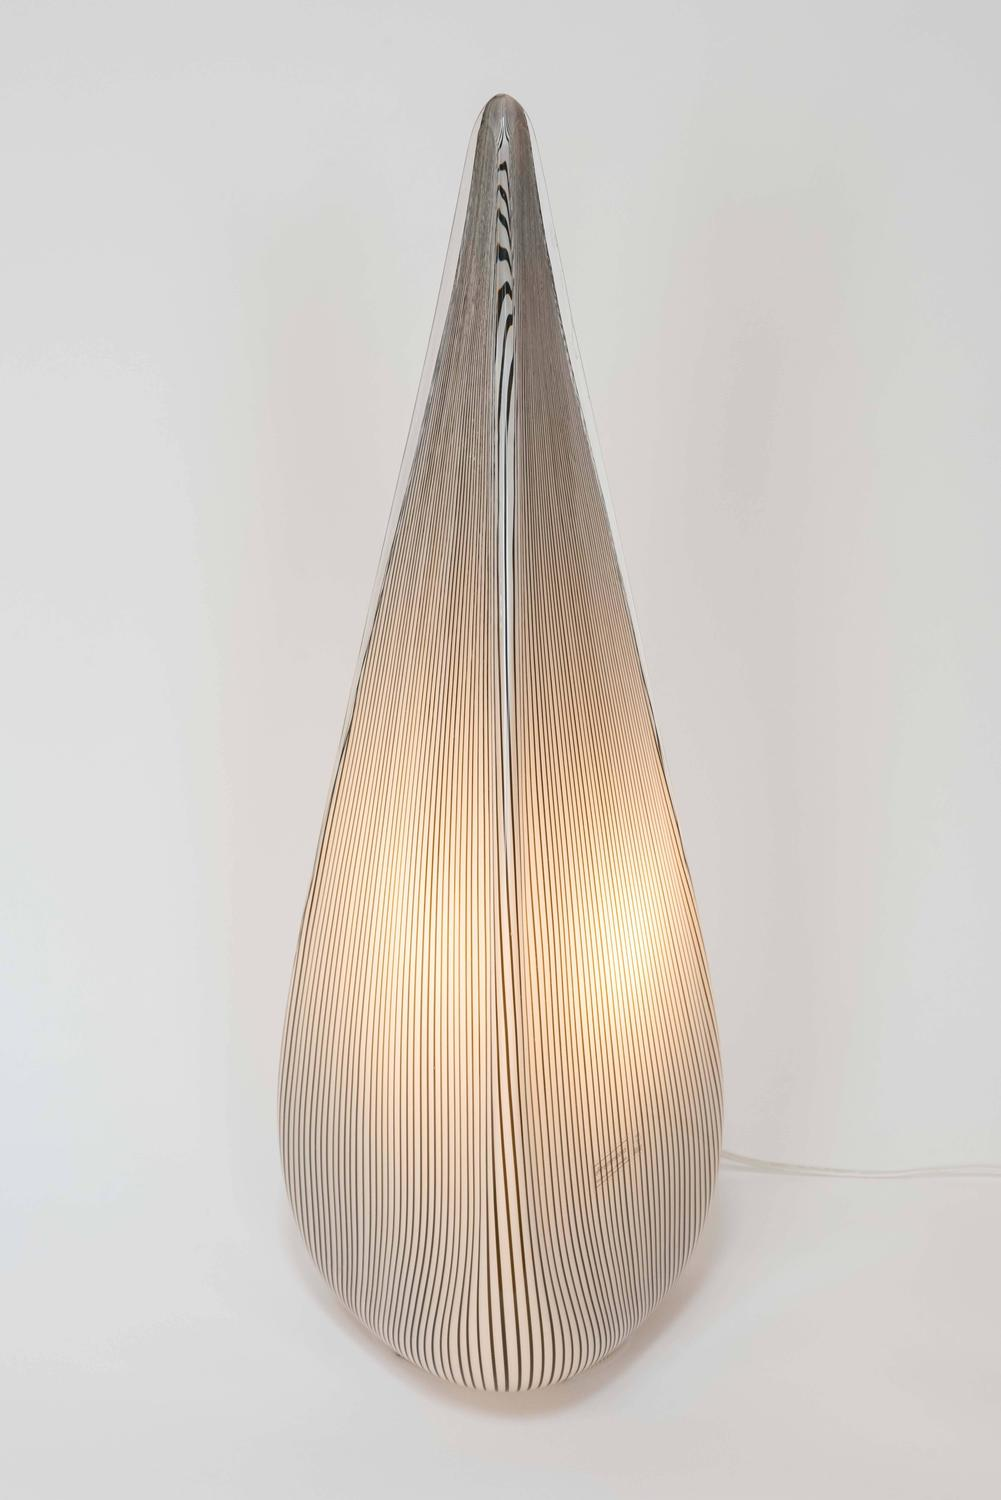 Glass pyramid lamp by lino tagliapietra for vetri murano for Chair table lamp yonge st